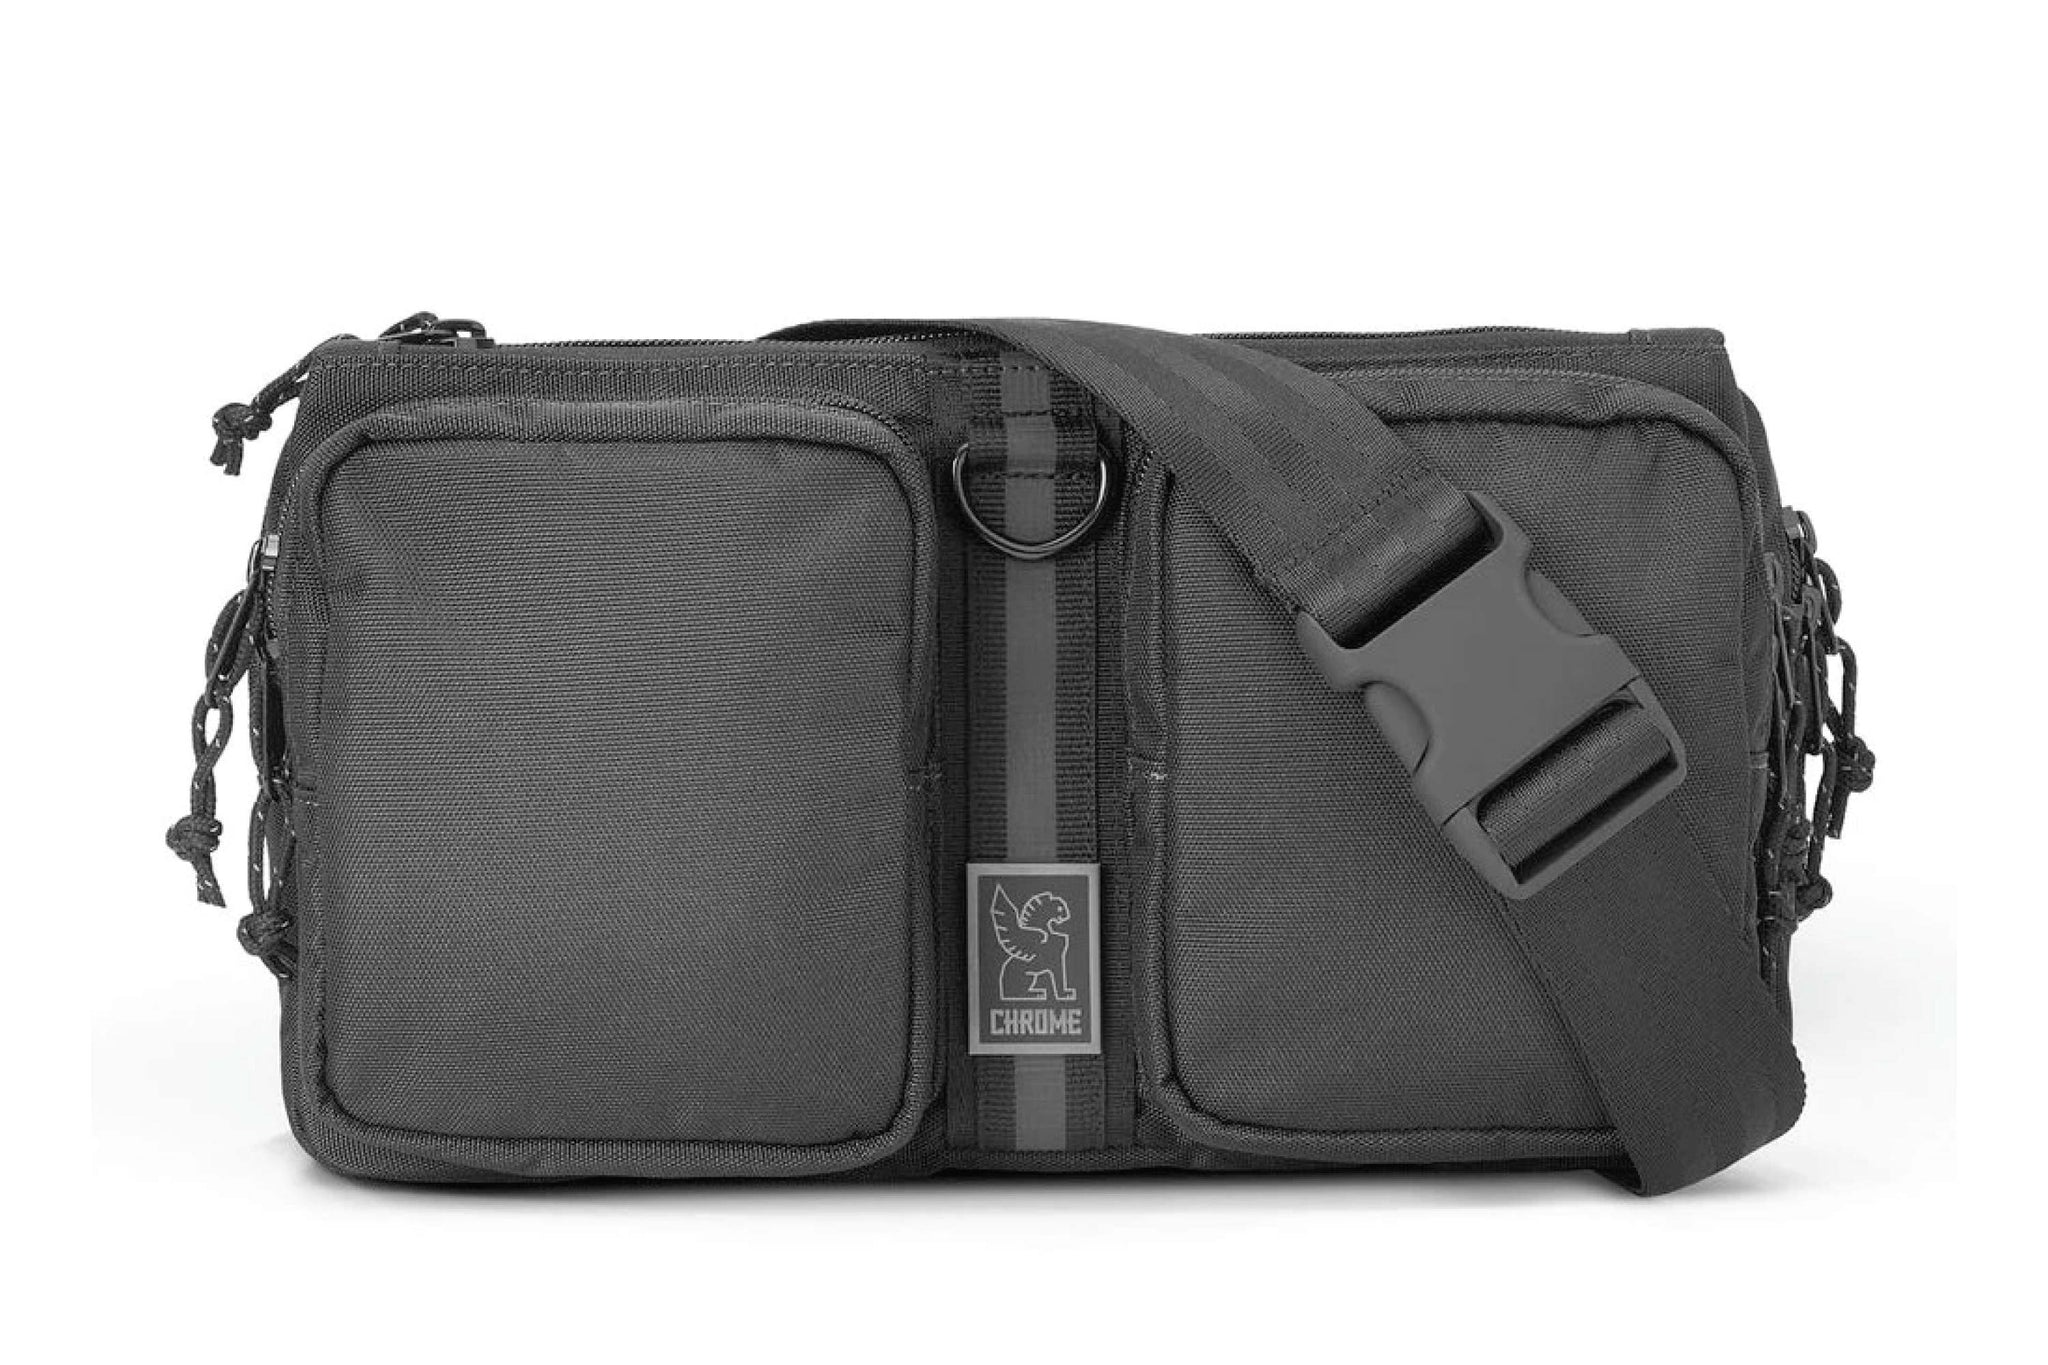 Chrome Industries MXD Notch Sling Bag